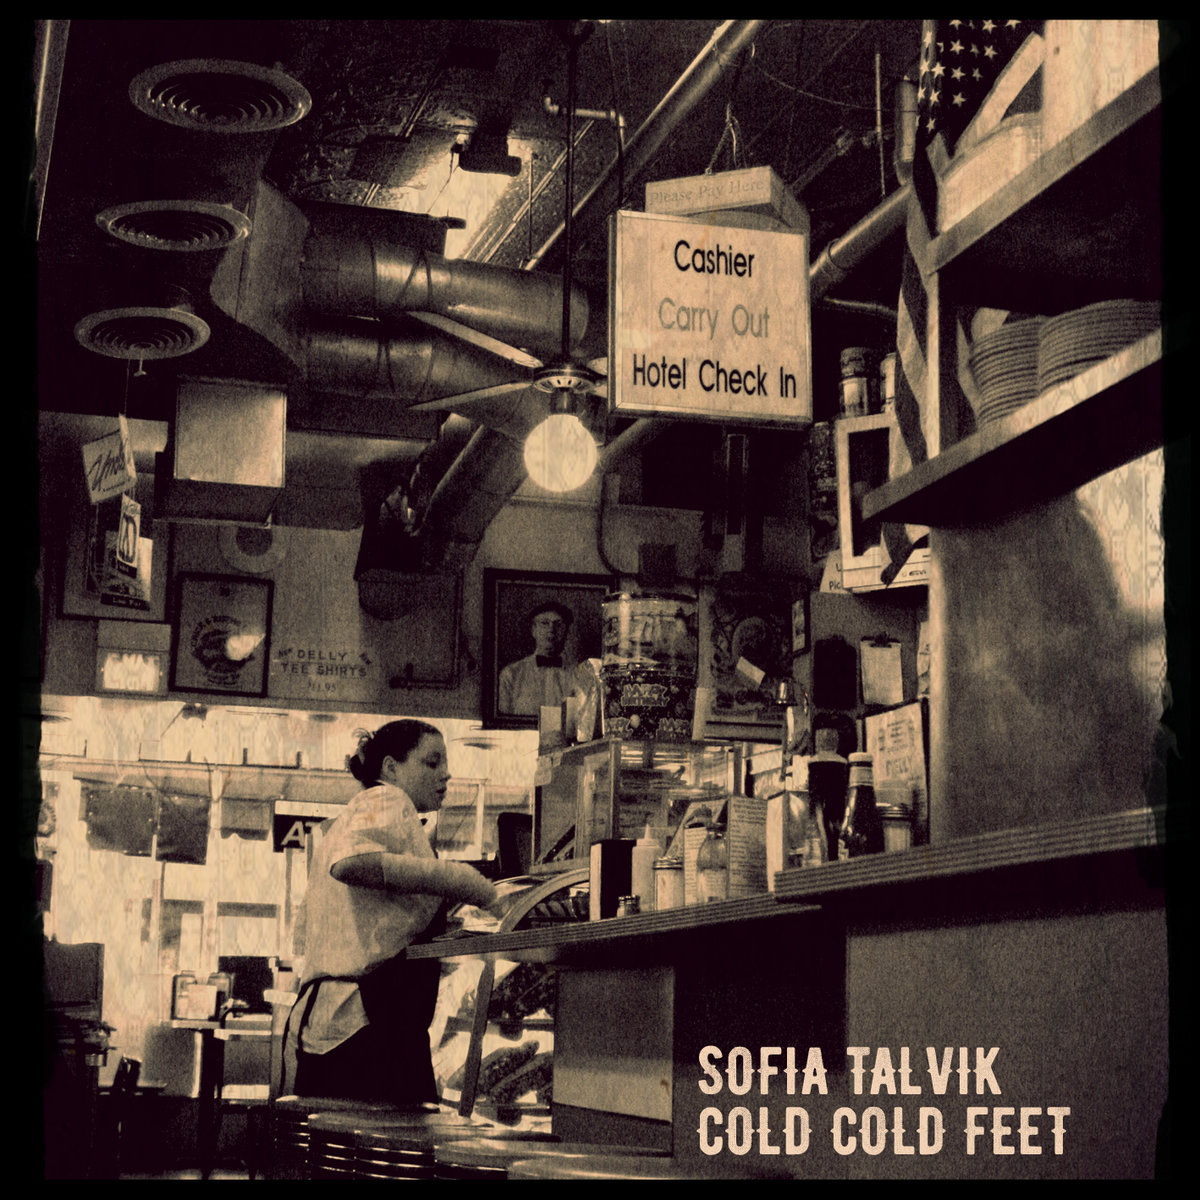 Sofia Talvik - Cold Cold Feet - Single Cover